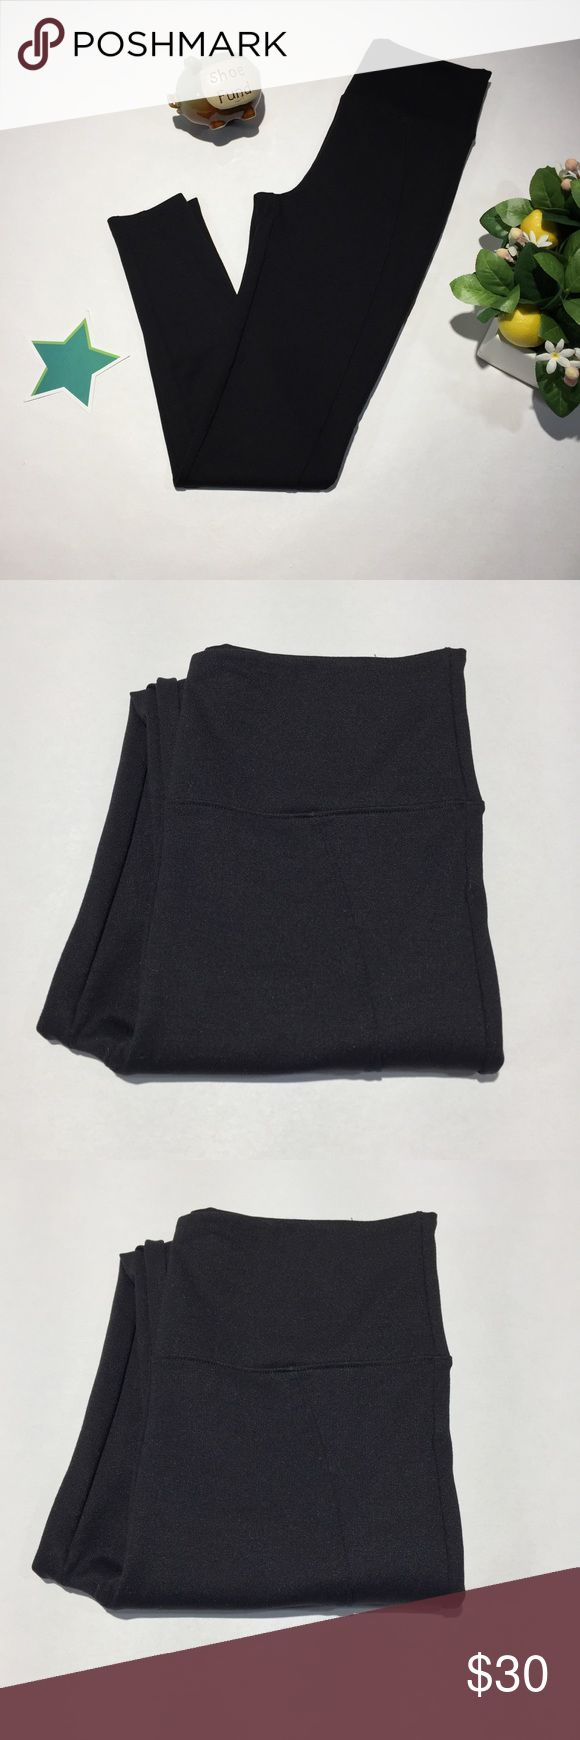 Assets by Spanx for Sarah Blakley Medium Leggings ☀️ Medium  ☀️ Solid Black ☀️ Length - 38 in ☀️ Inseam - 27 in  📬 Ships next business day 📣 Please only make offers through Button 💰 Reasonable offers welcome ❌ NO TRADES ACCEPTED ❌ Assets By Spanx Pants Leggings